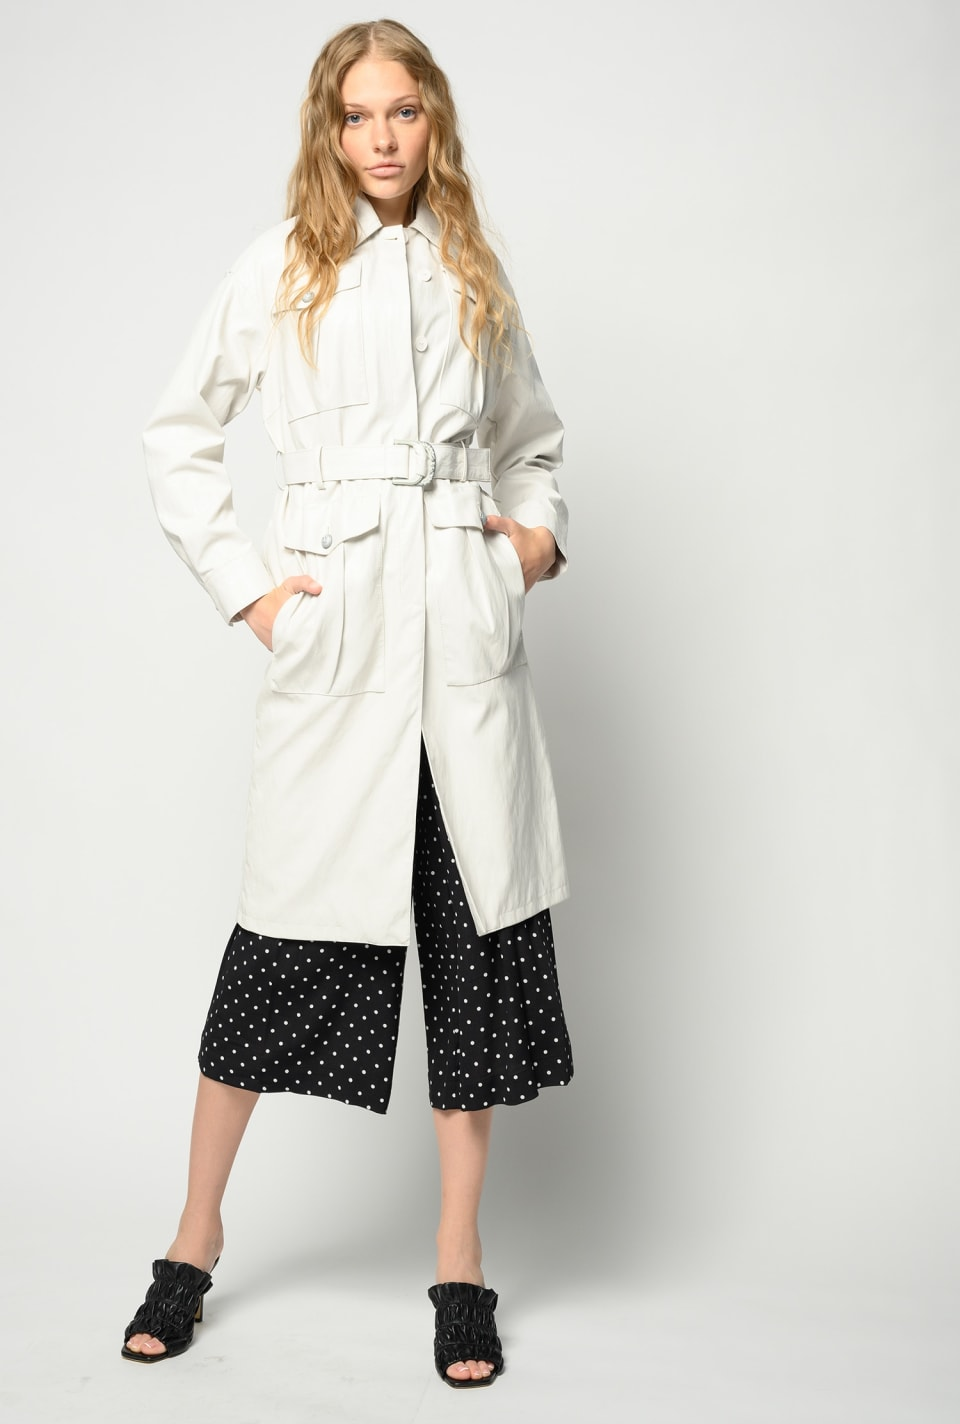 Leather-look trench coat - Pinko